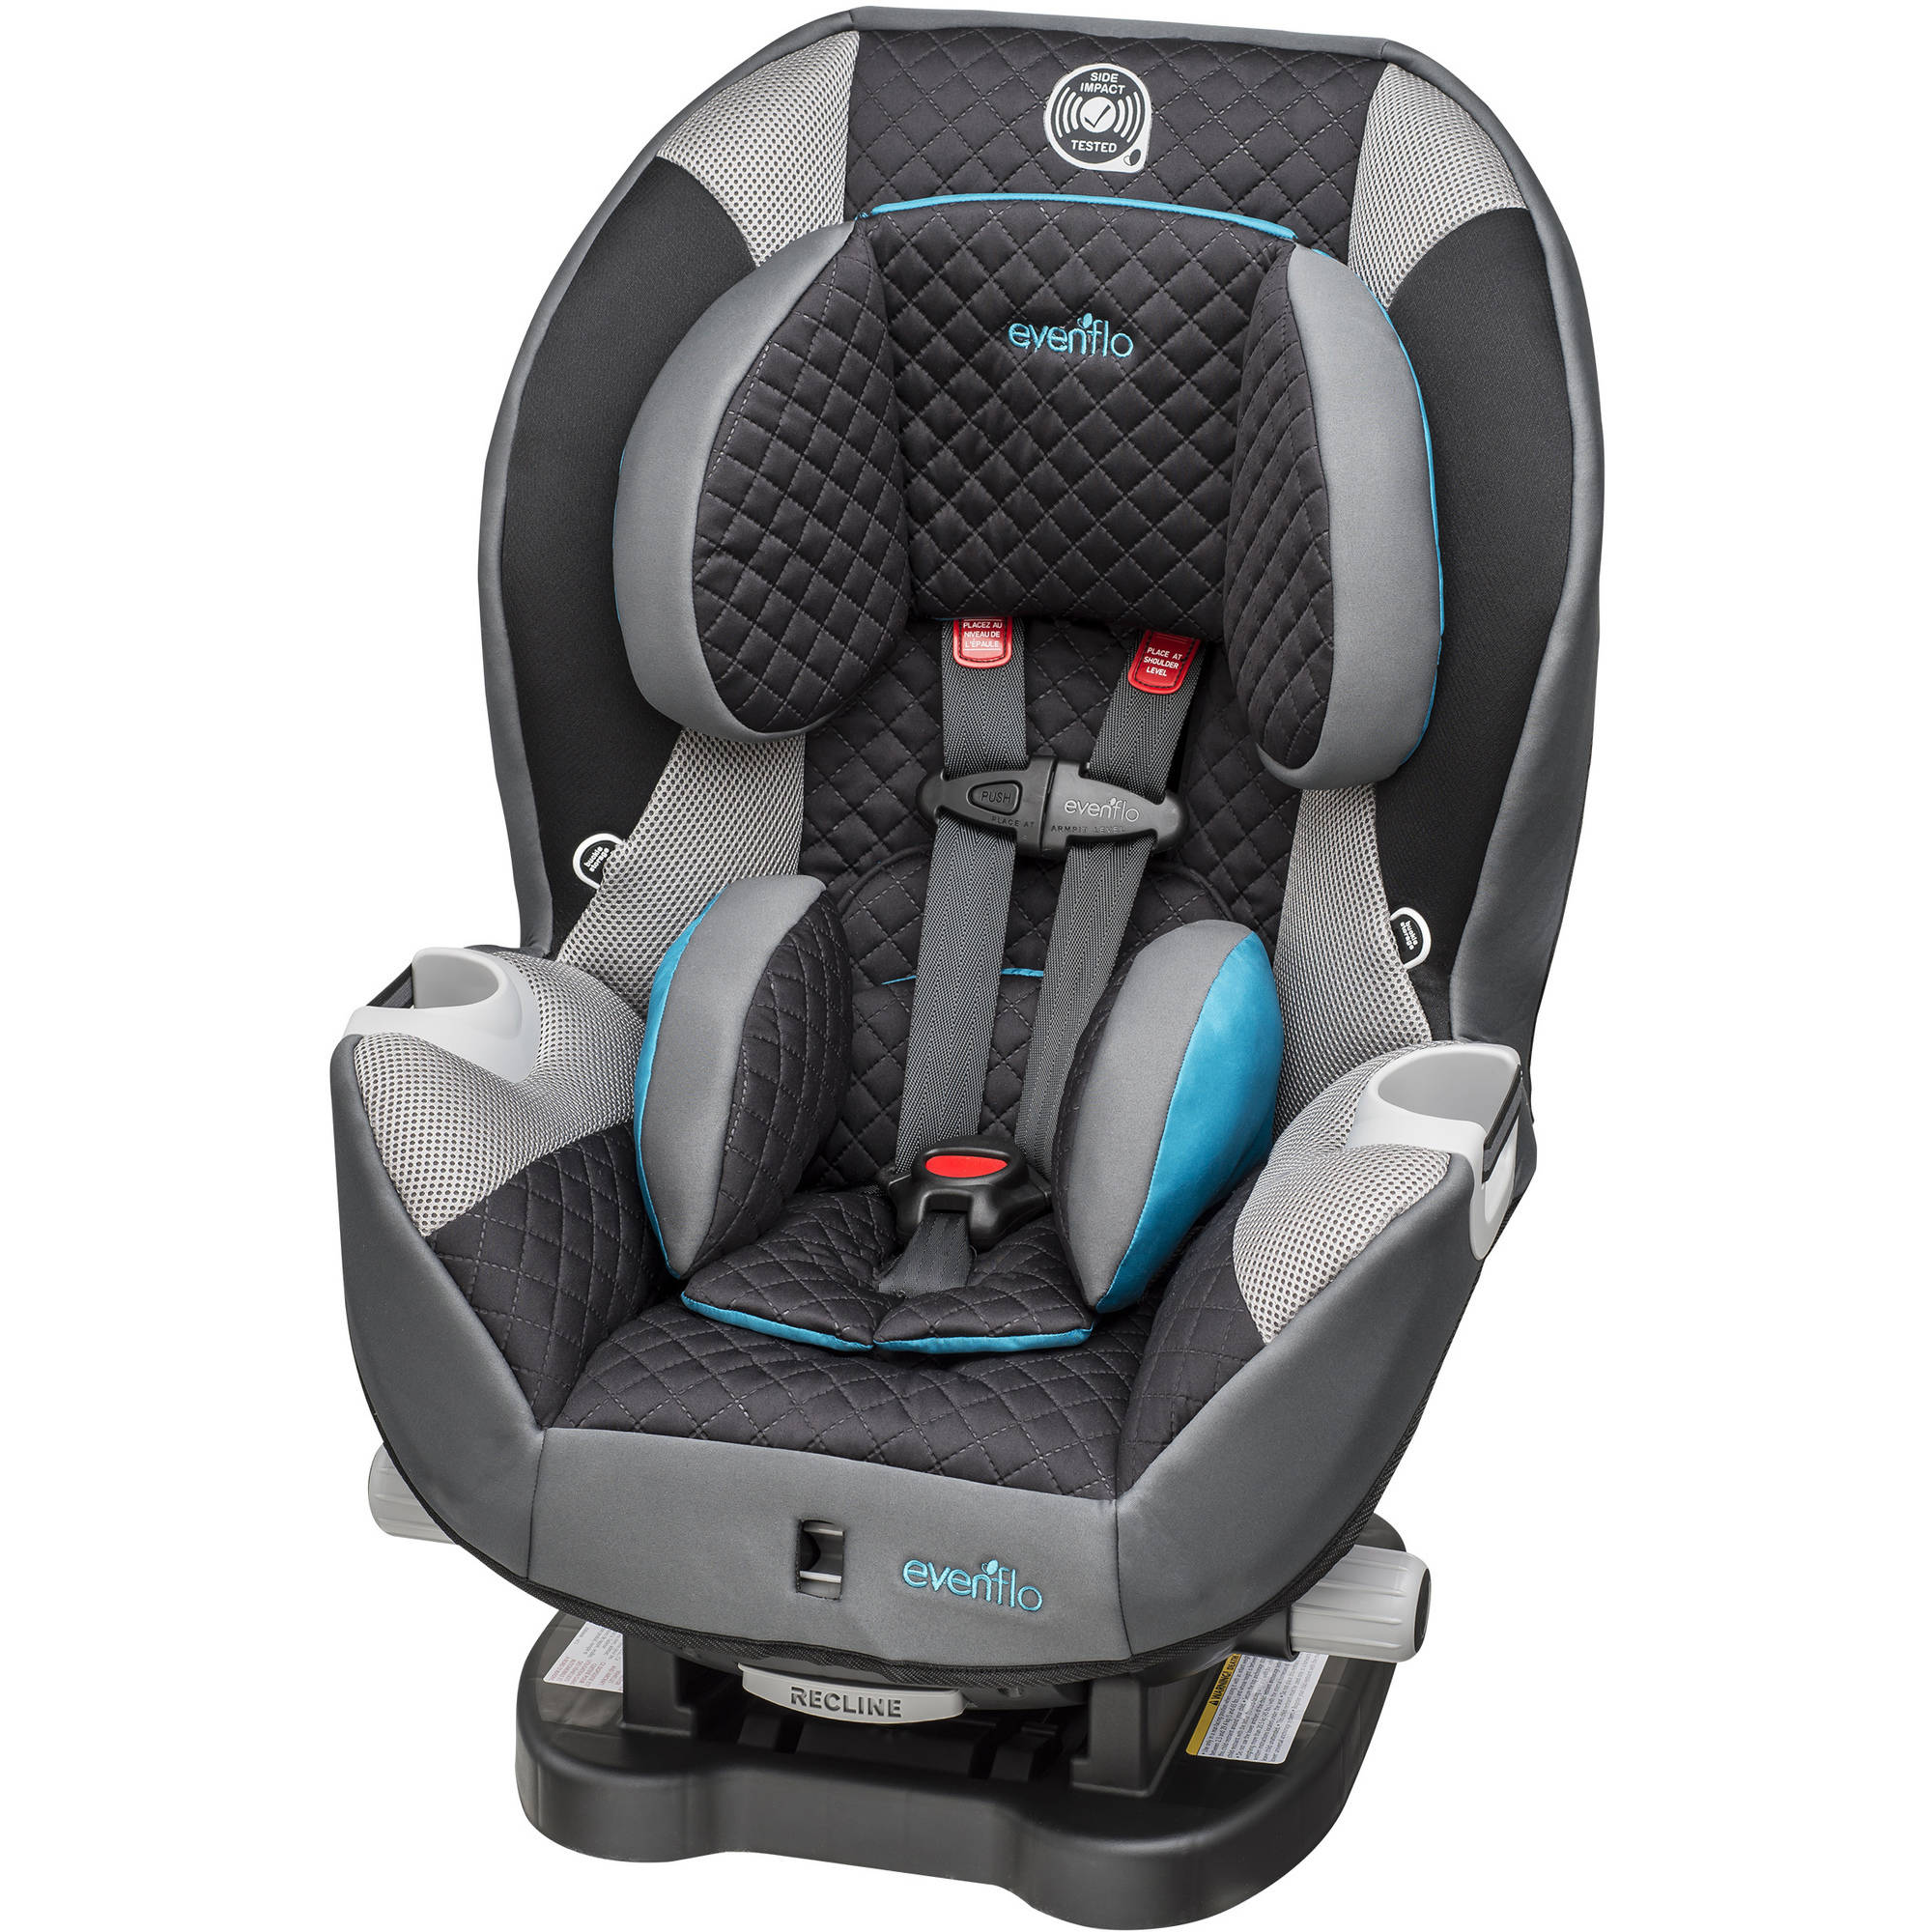 Evenflo Advanced Triumph LX Convertible Car Seat, Flynn